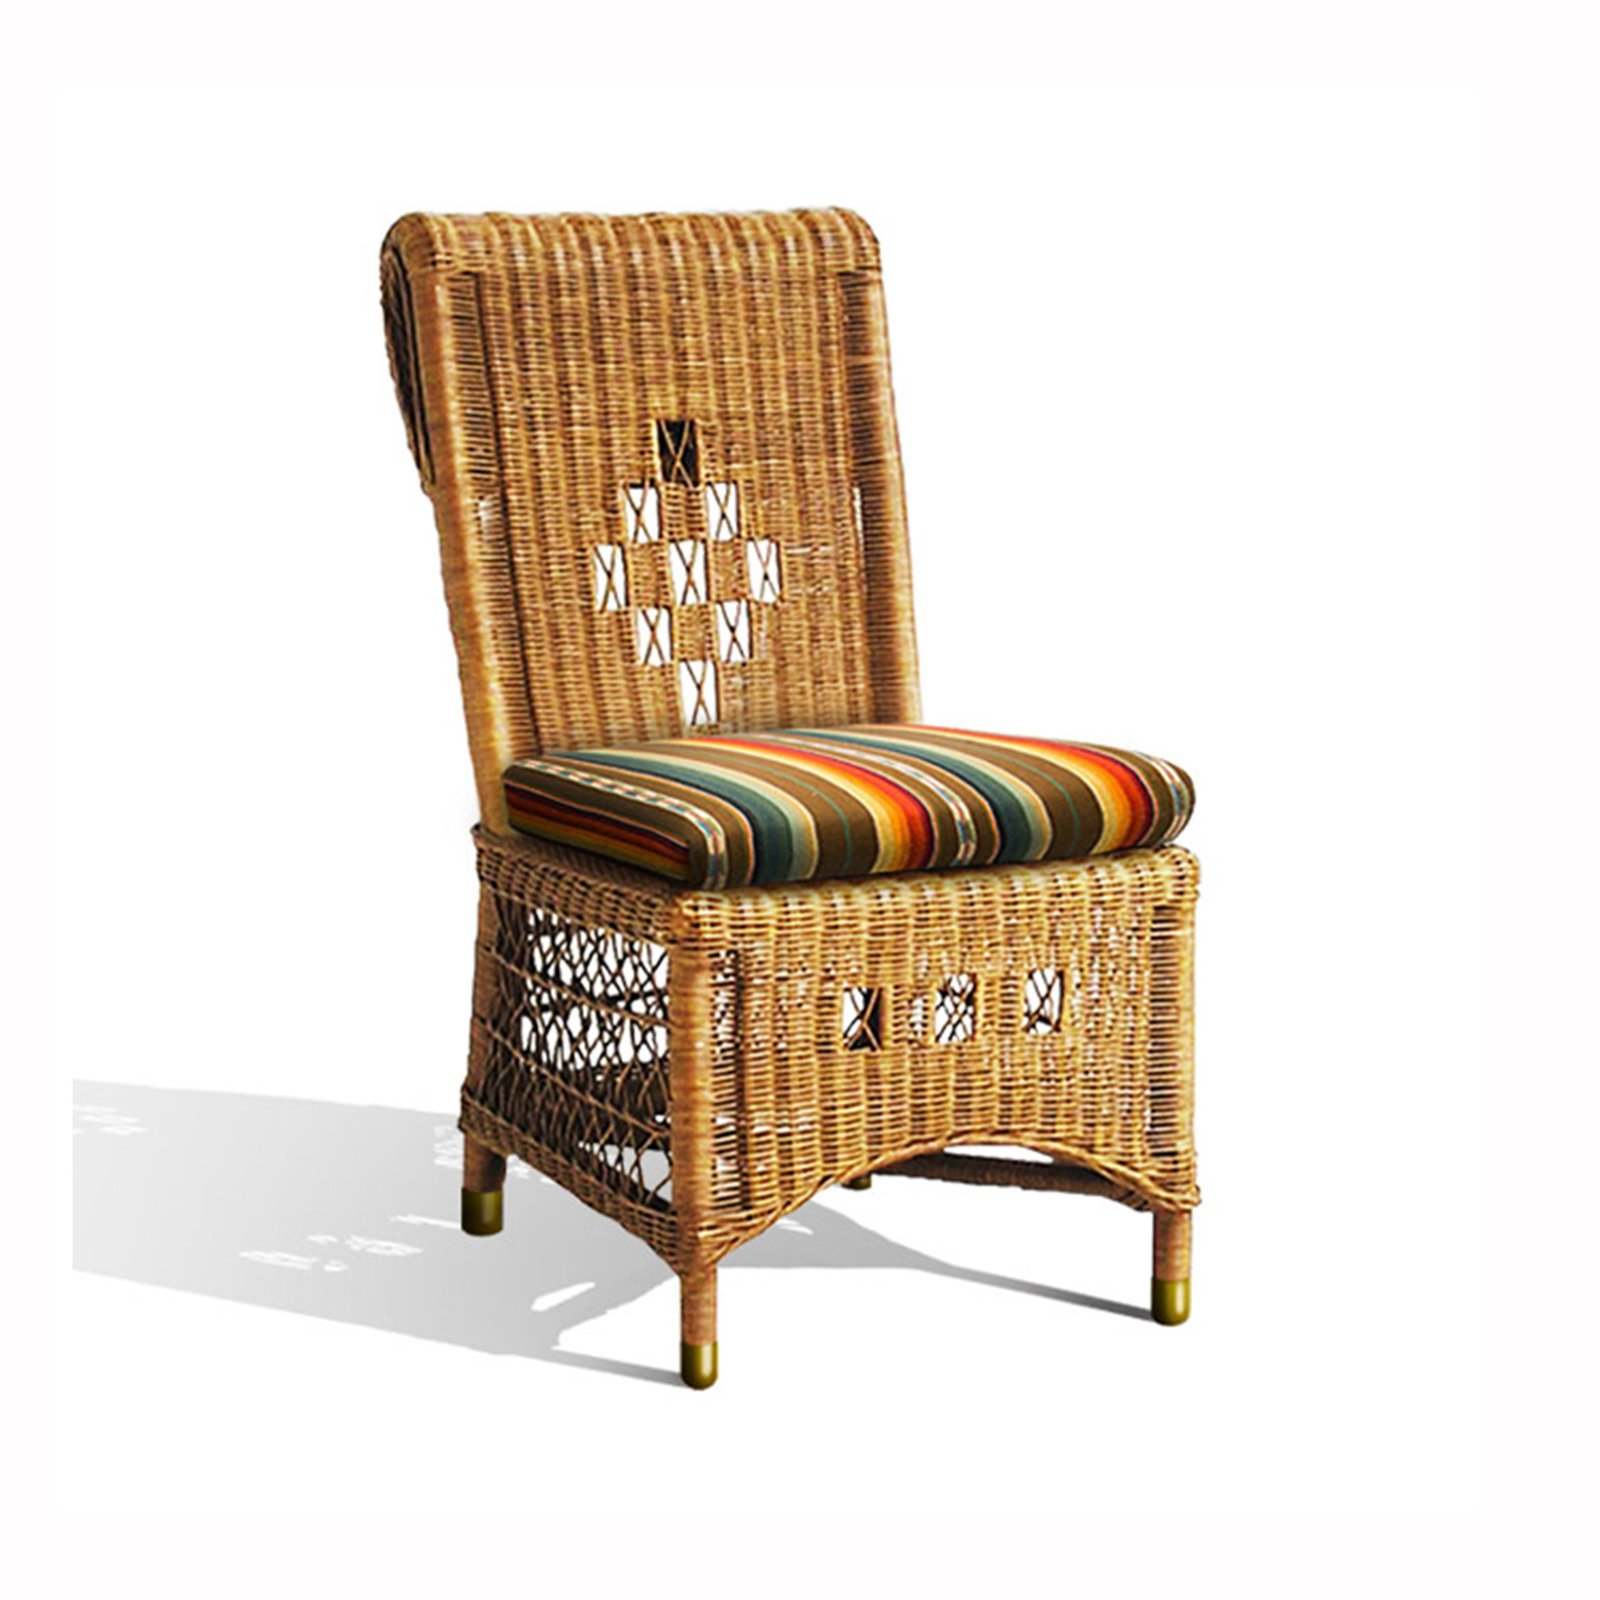 HUDSON BAY SIDE CHAIR - STUART MEMBERY HOME COLLECTION